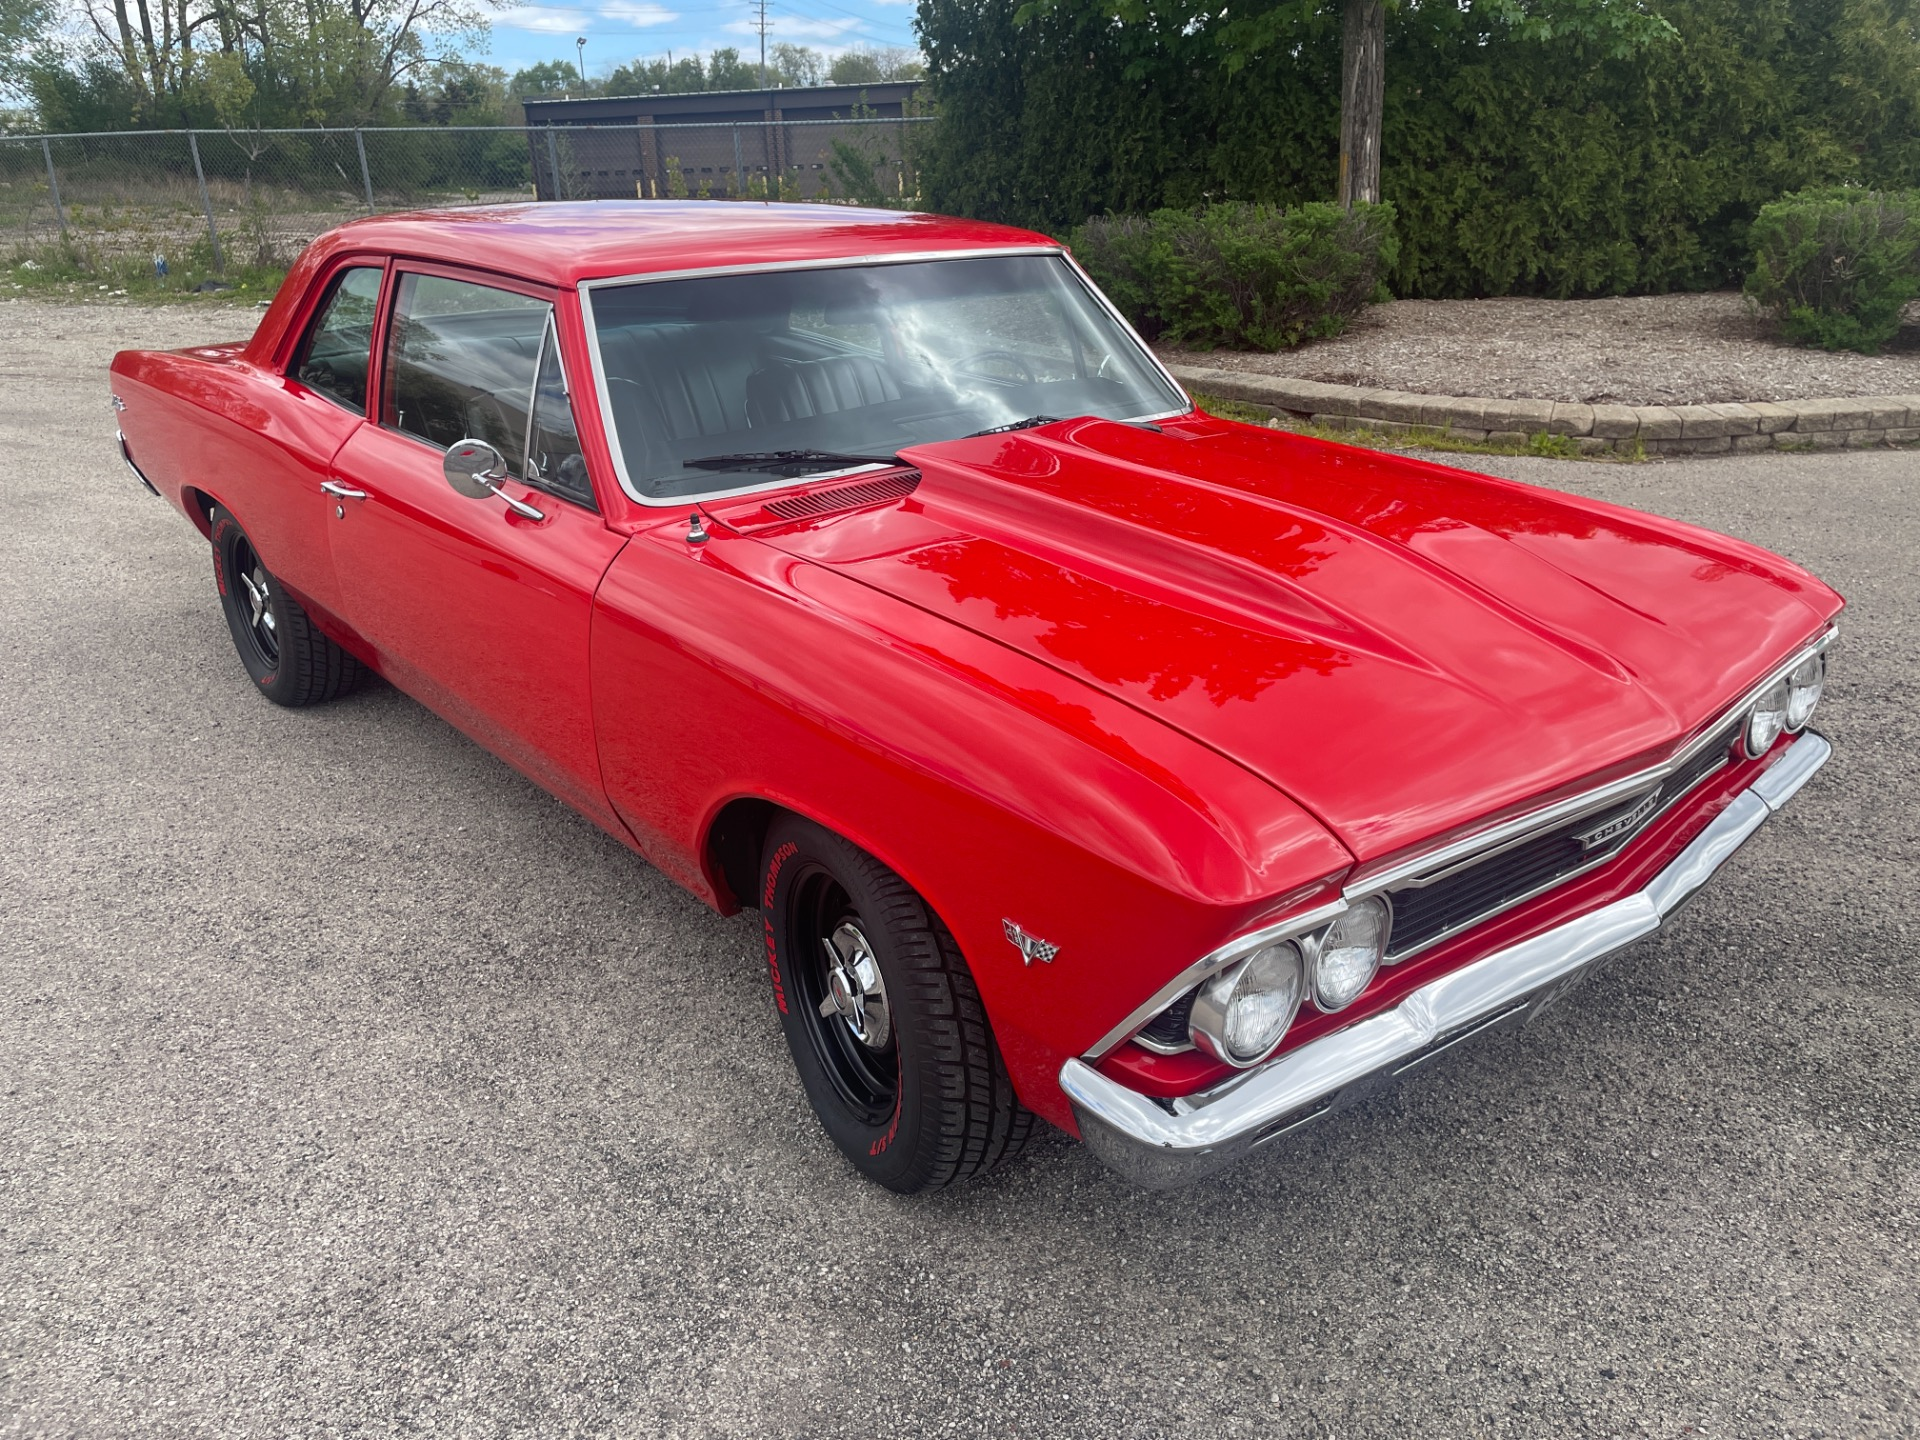 Used 1966 Chevrolet Chevelle DELUXE SEDAN-FRAME OFF RESTORED-BIG BLOCK 454 WITH 4 SPEED- | Mundelein, IL